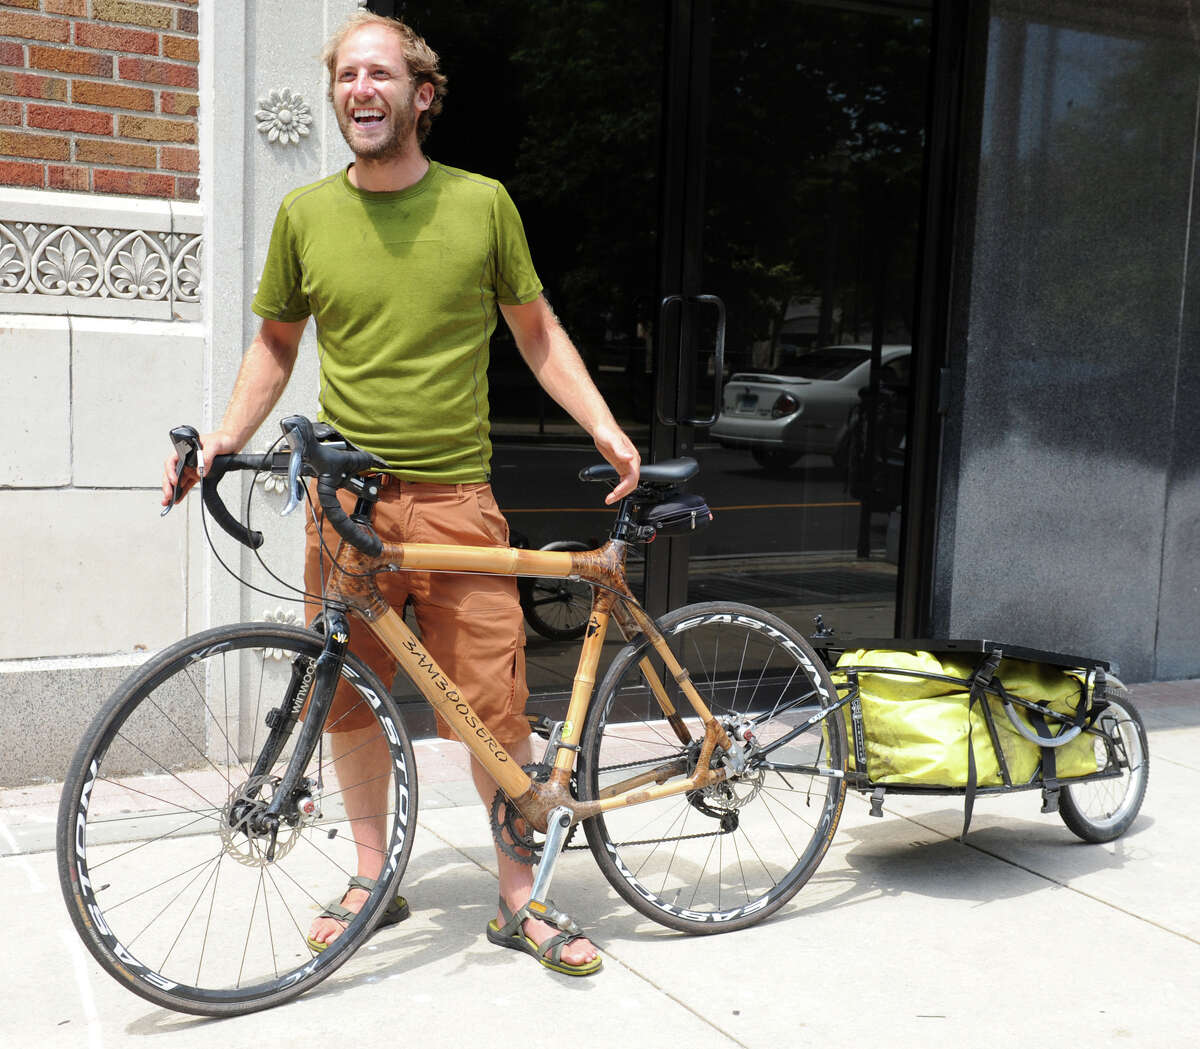 Rob Greenfield speaks during an interview in Bridgeport, Conn., July 18, 2013. Greenfield is in the process of riding his bicycle, which is made of bamboo, from San Francisco to Waitsfield, Vt., a journey of roughly 4,500 miles. Calling his trip Off the Grid Across America, it is meant to promote his lifestyle of environment awareness and adventure.